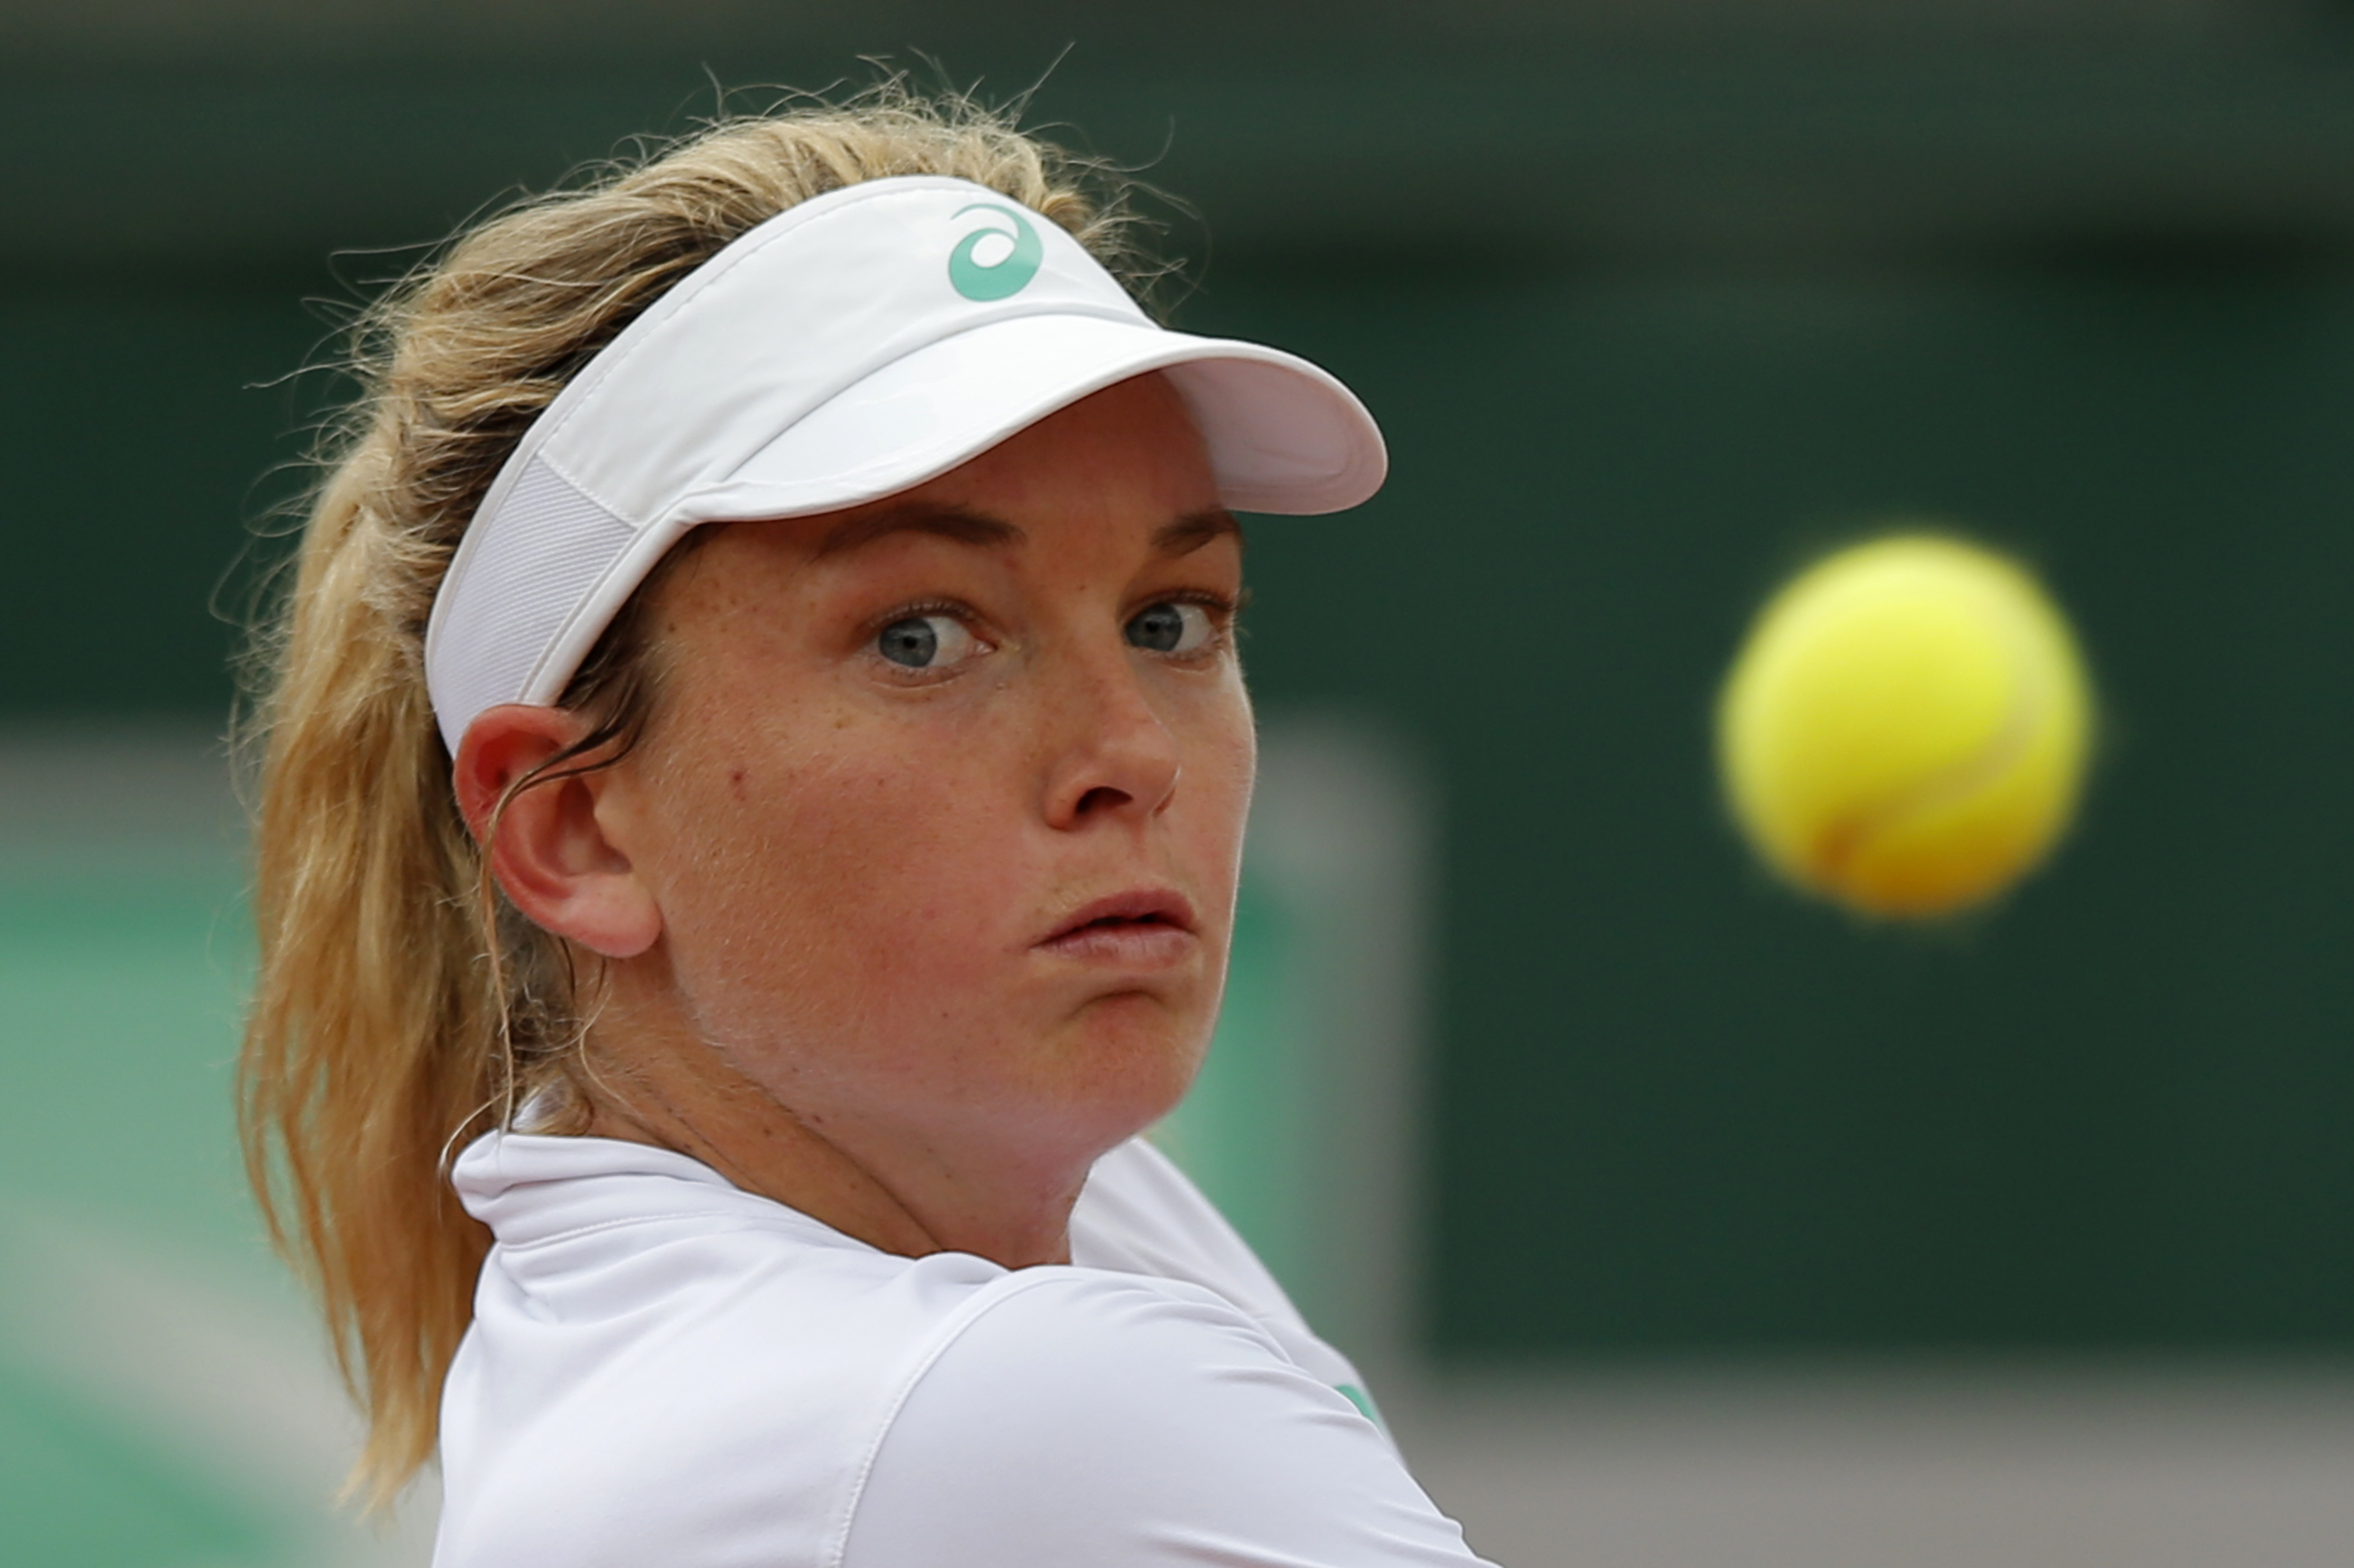 USA's Coco Vandeweghe eyes the ball as she plays Germany's Julia Goerges during their first round match of the French Open tennis tournament at the Roland Garros stadium, Tuesday, May 26, 2015 in Paris . (AP Photo/Francois Mori)